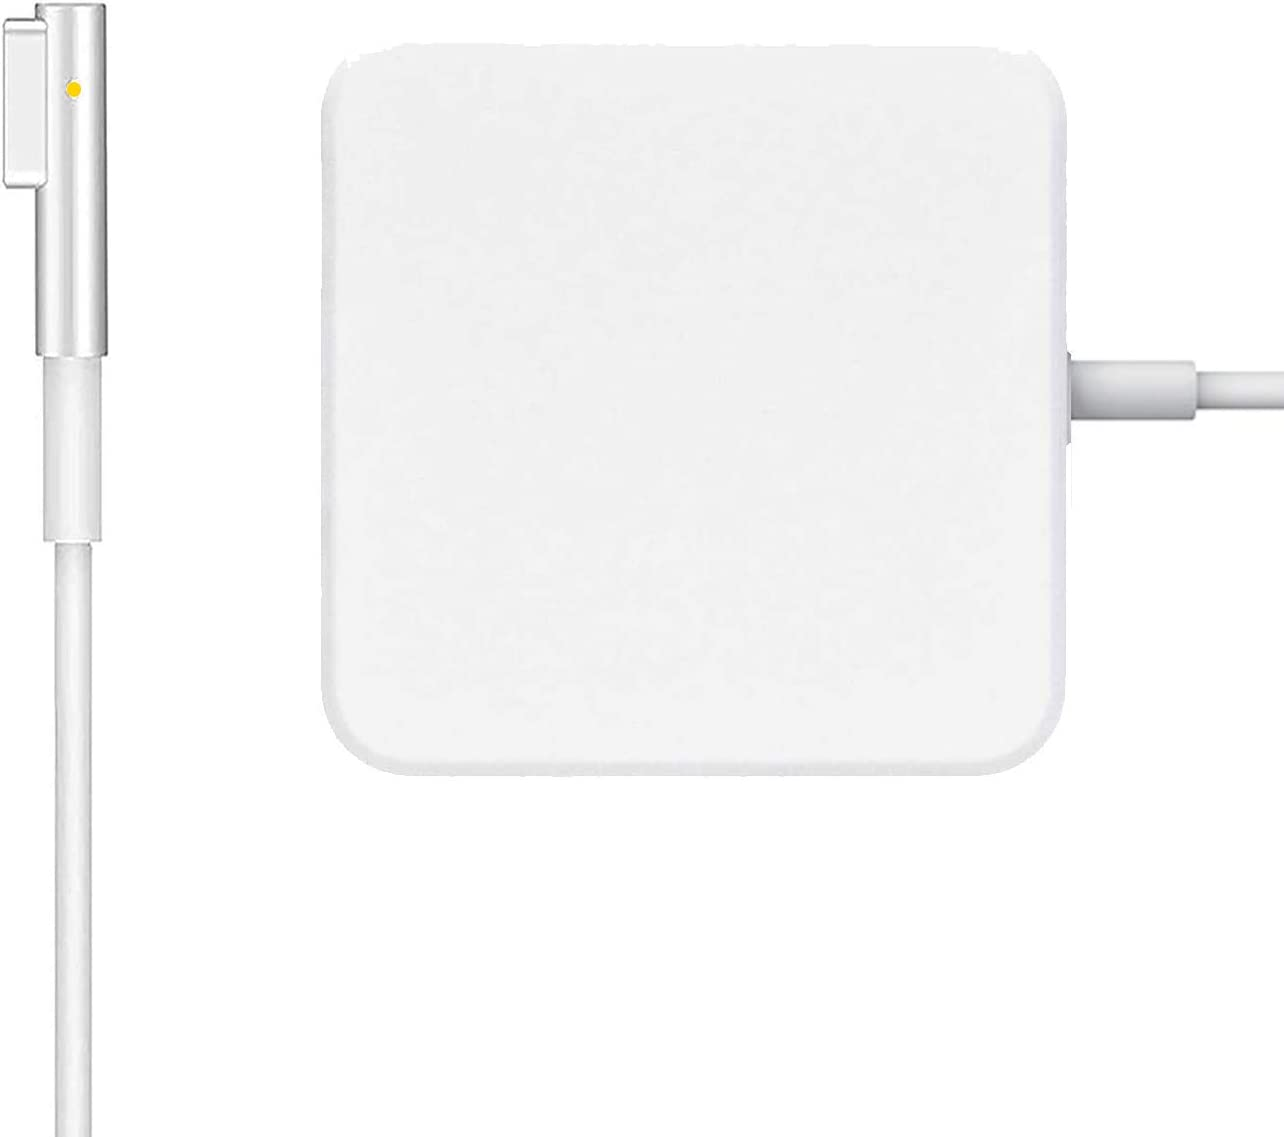 60W Mac Book pro Charger, AC 60W L-Tip Power Adapter Replacement for 13-inch Mac Book Pro(Before Mid 2012 Models)